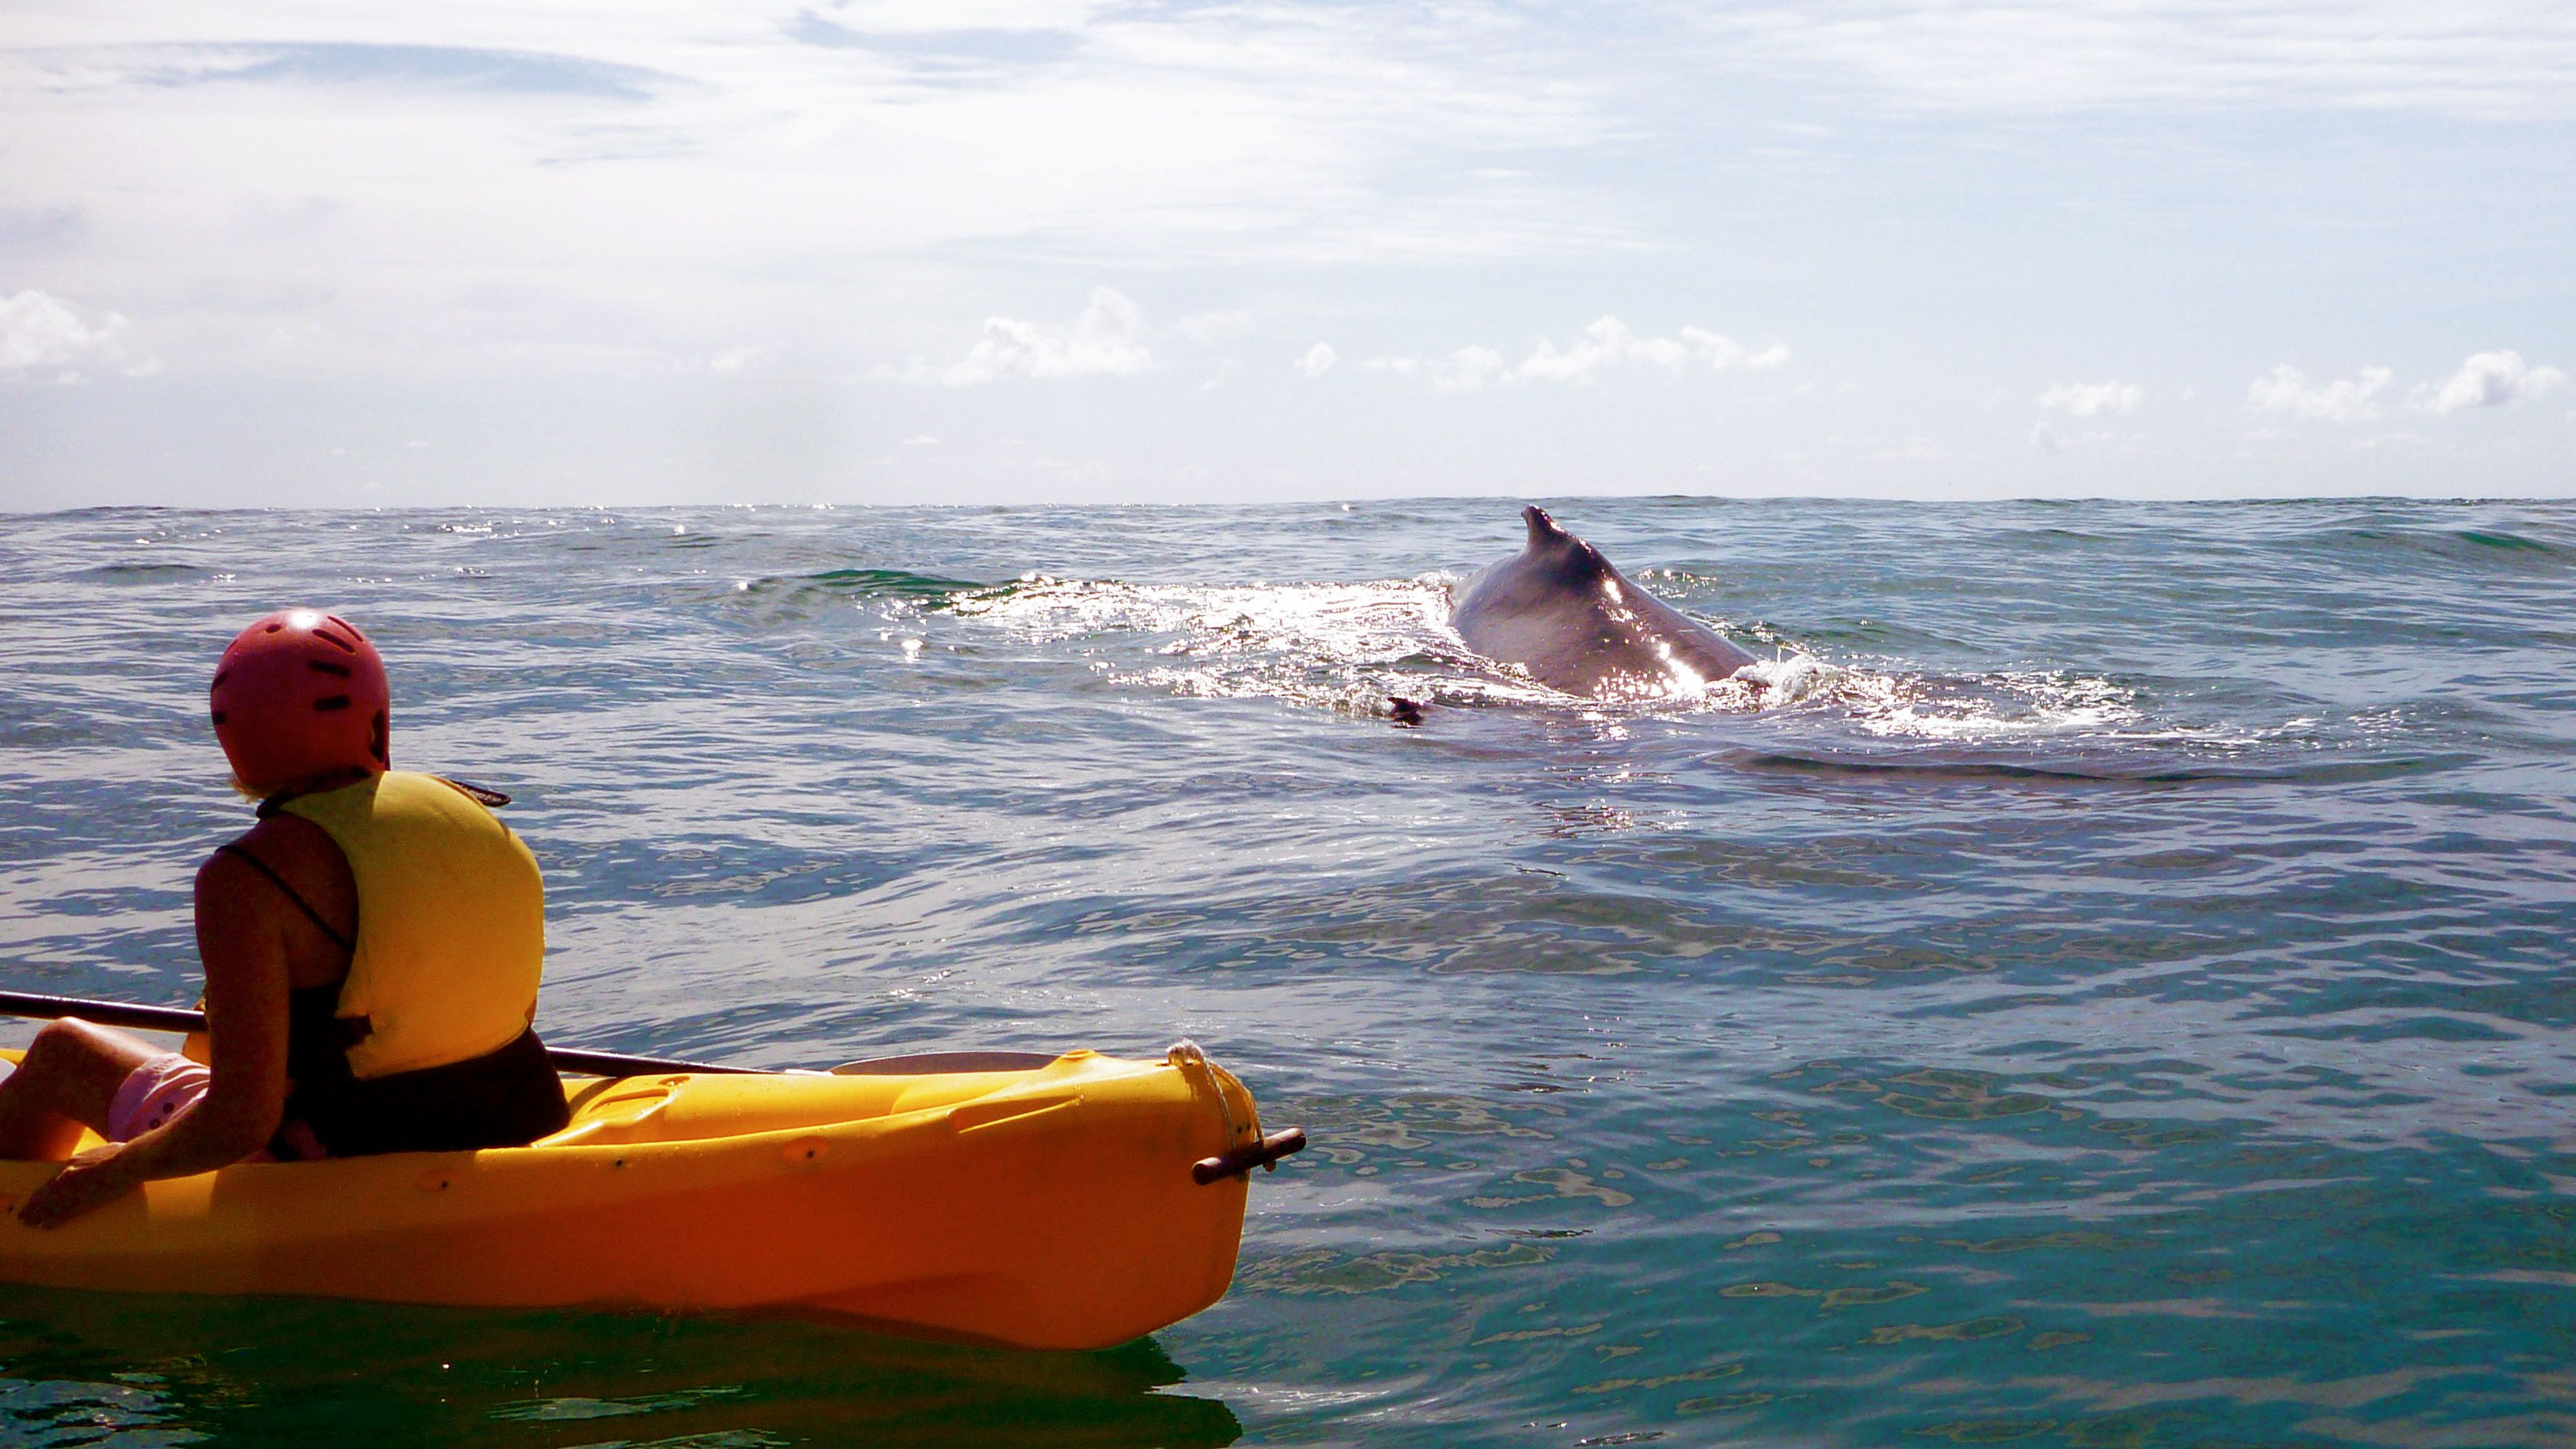 Kayakers on the water near a surfacing dolphin in Byron Bay